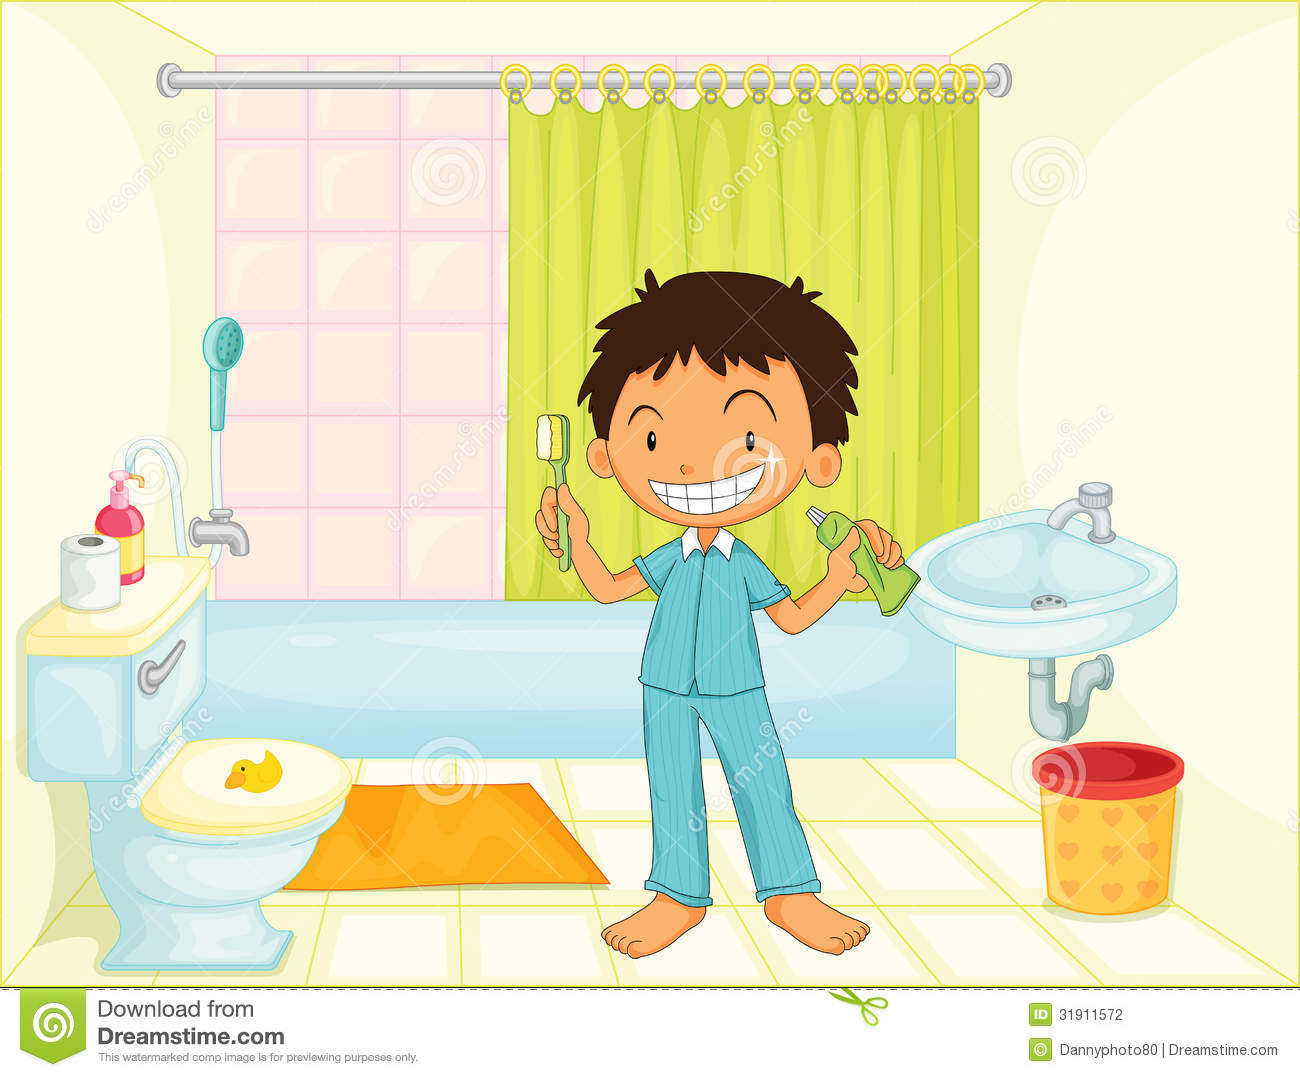 Kids cleaning bathroom clipart.